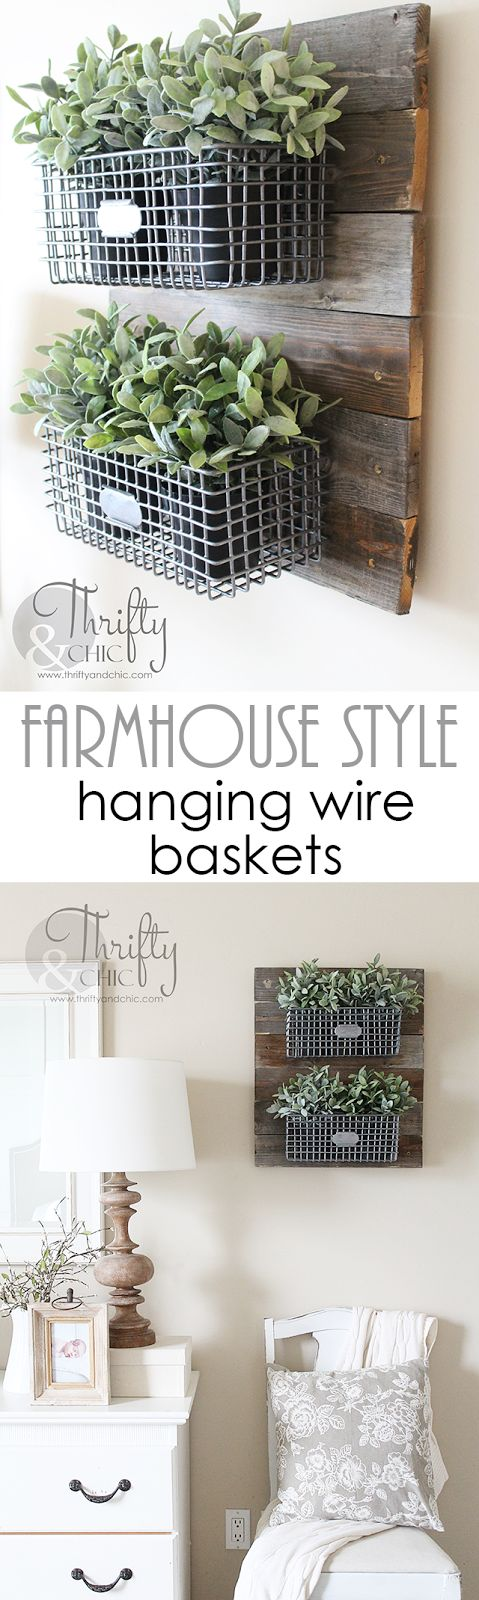 DIY Farmhouse Style Hanging Wire Baskets On Reclaimed Wood.